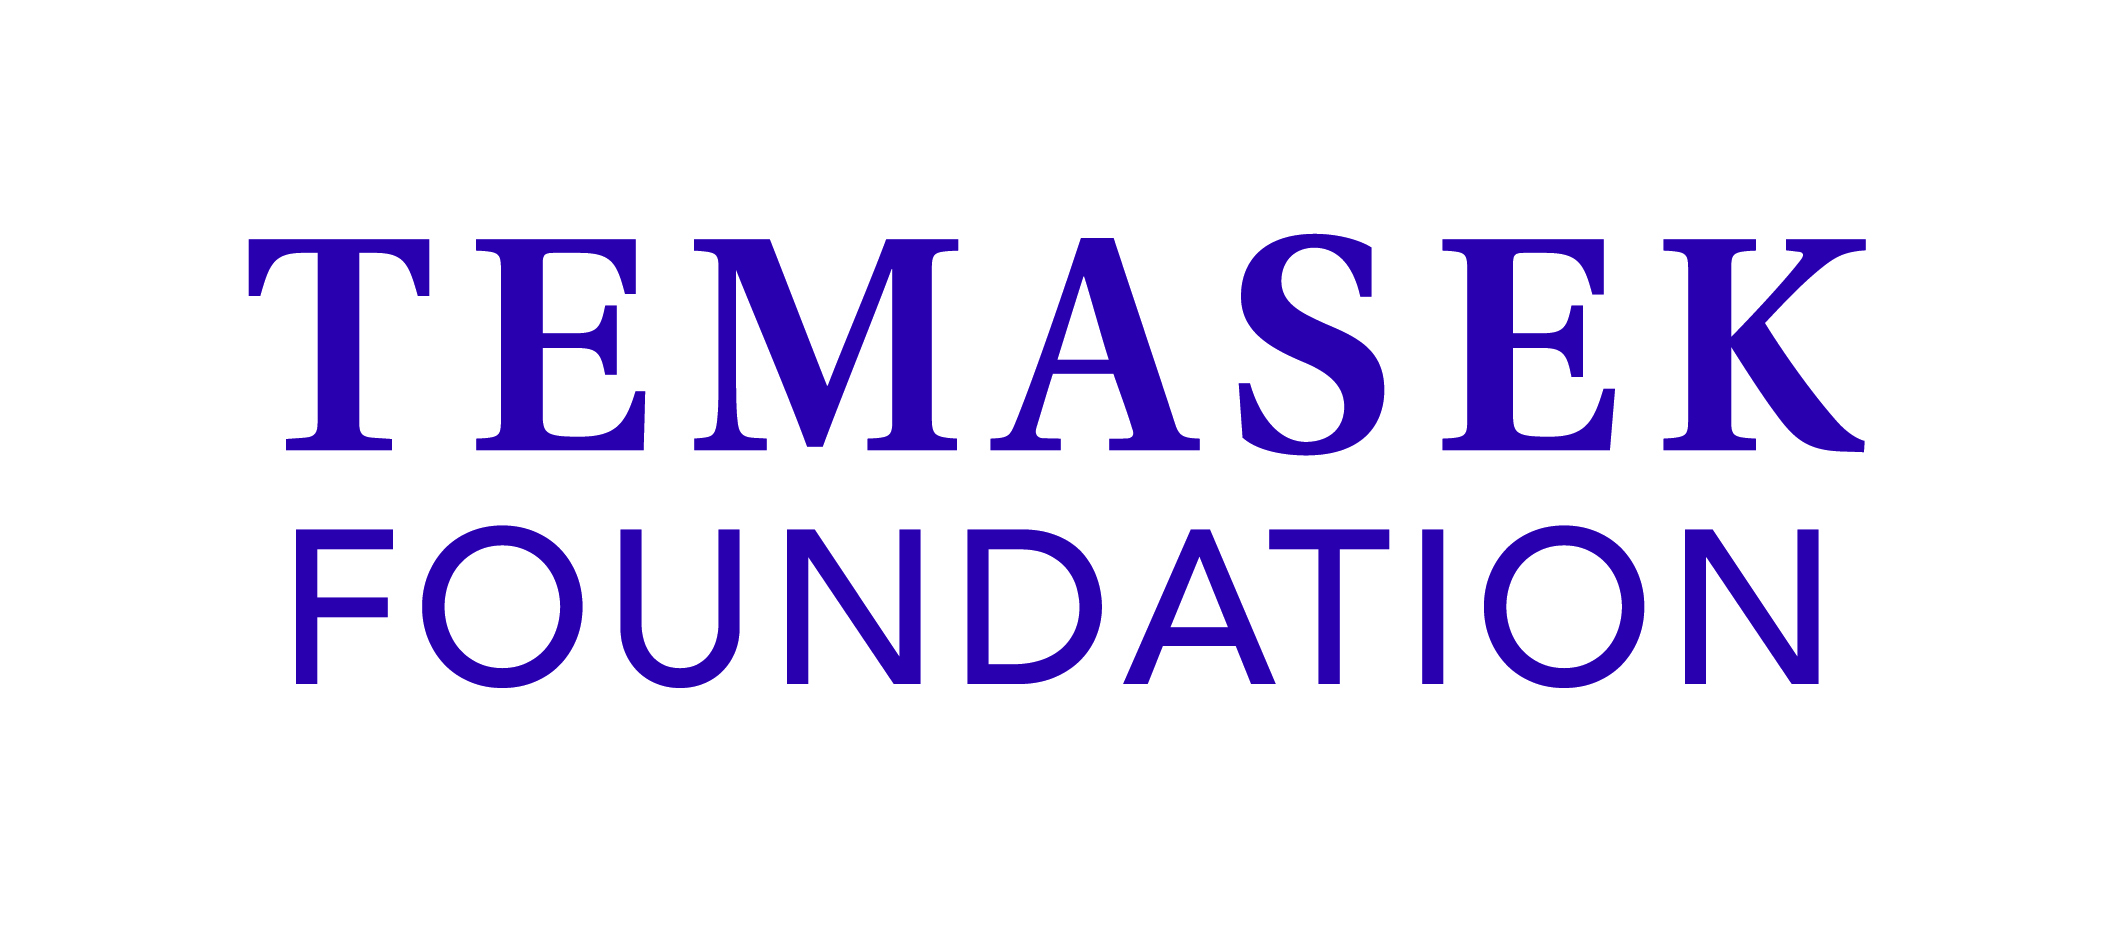 Temasek Foundation_FC